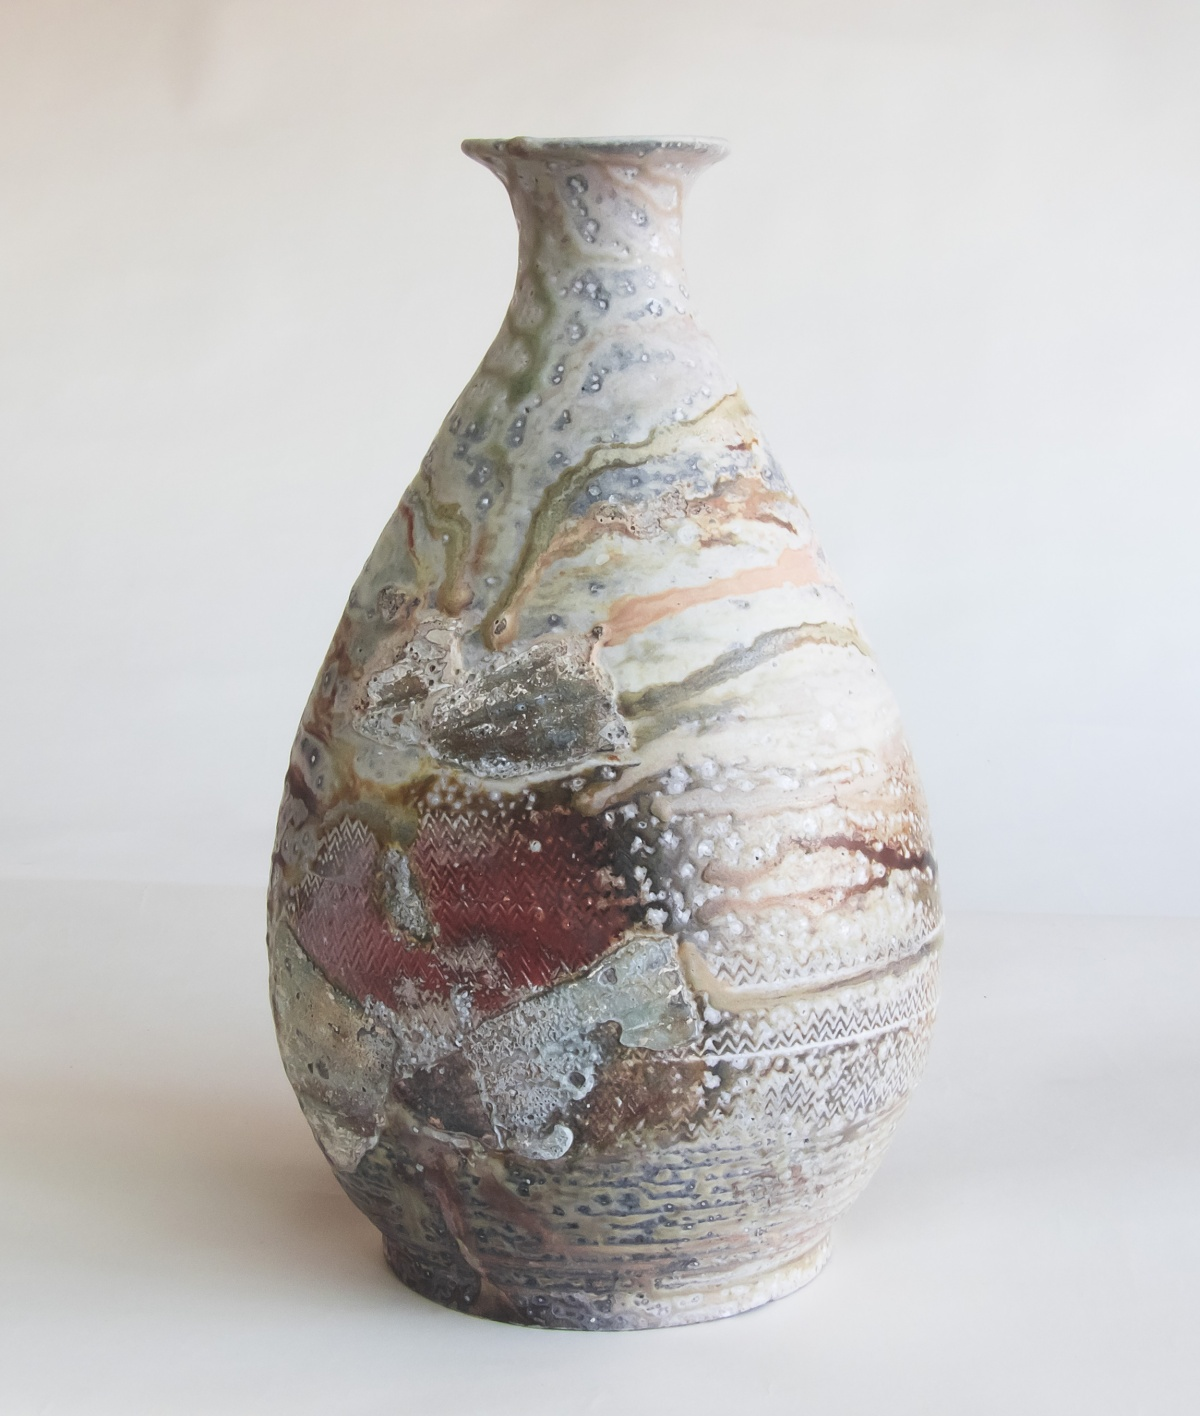 Kiln Building Workshop with Markus Boehm, School of Art, U of Manitoba, June 21-30